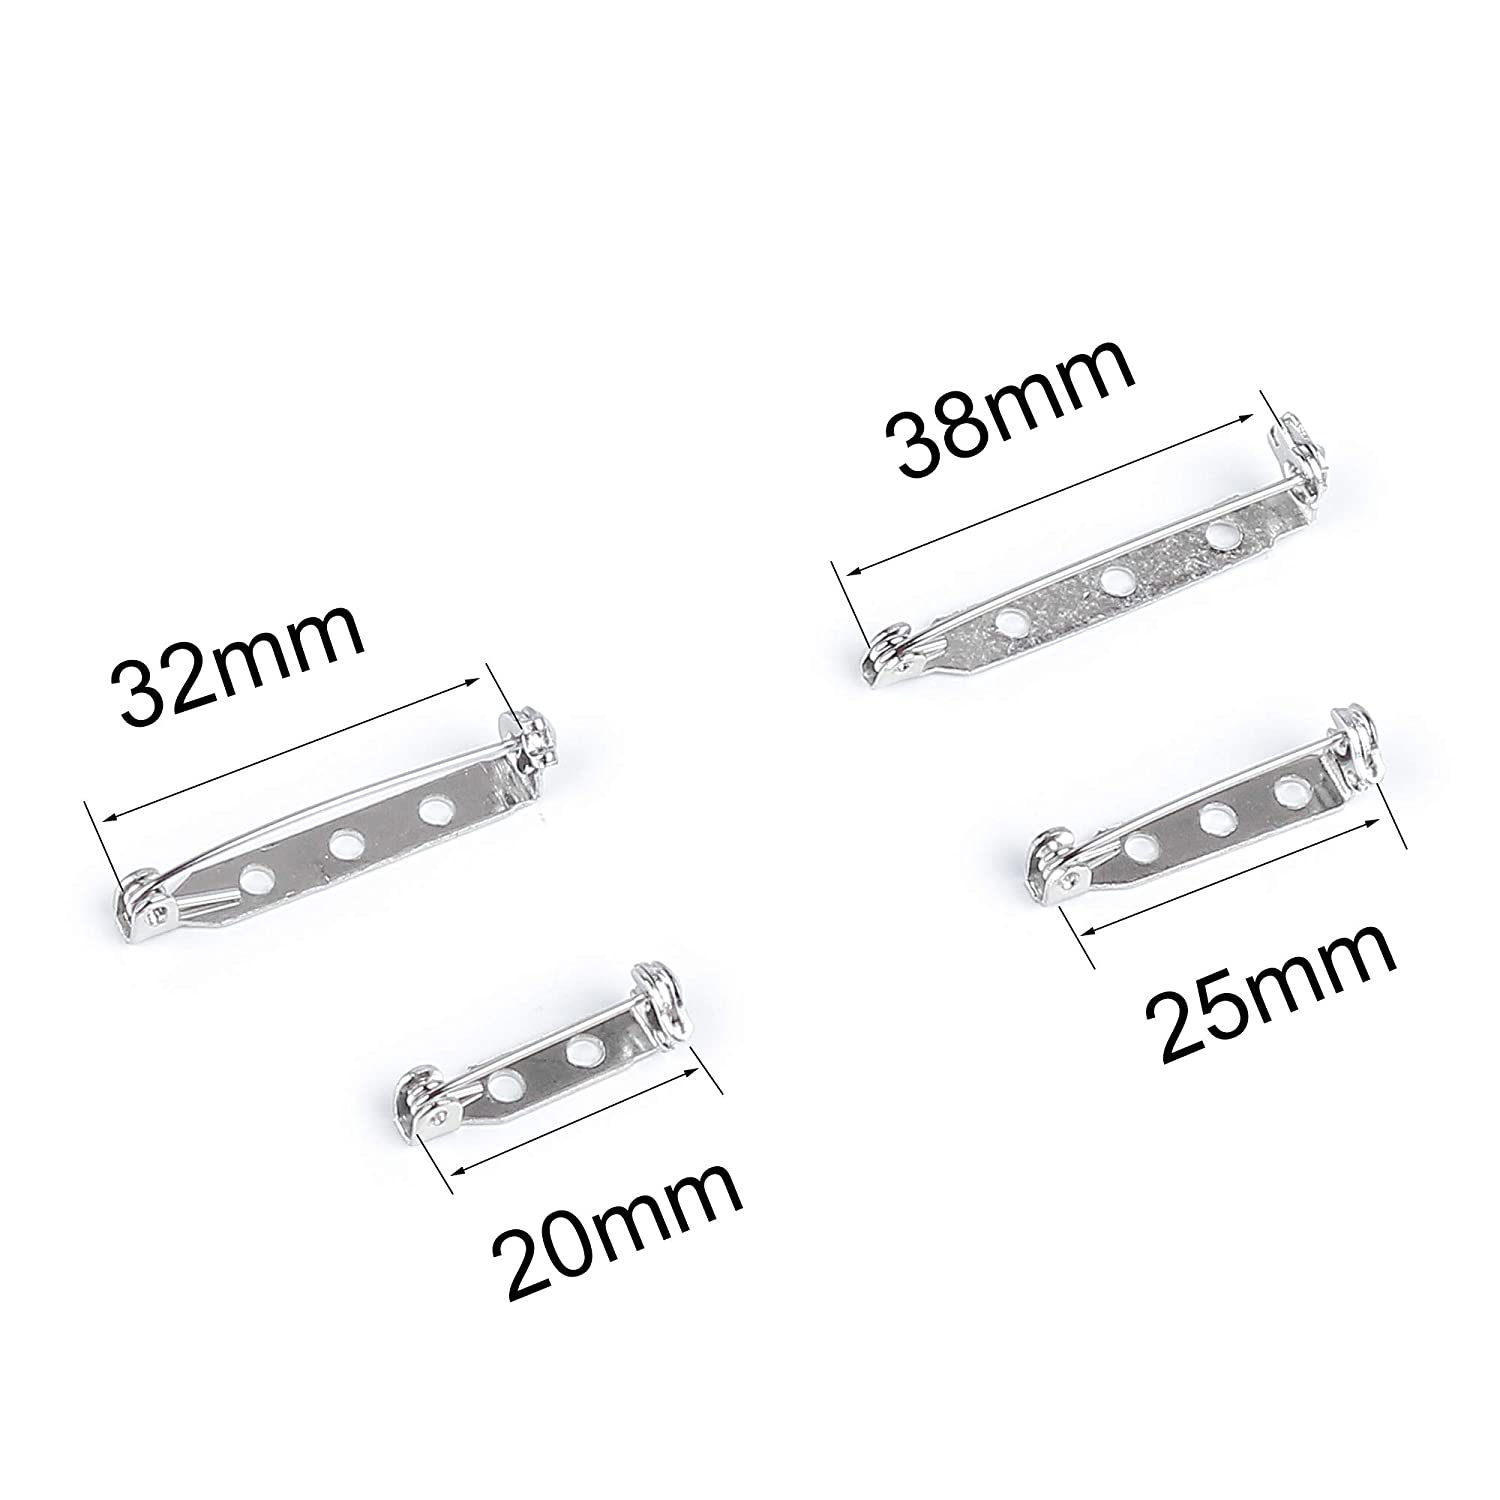 Tugaizi 150 Pieces 4 Sizes Silver Tone Pin Backs Bar Pins Brooch Pin Back Safety Clasp Brooch Pin with a matte plastic box 20 mm, 25 mm, 32 mm and 38 mm